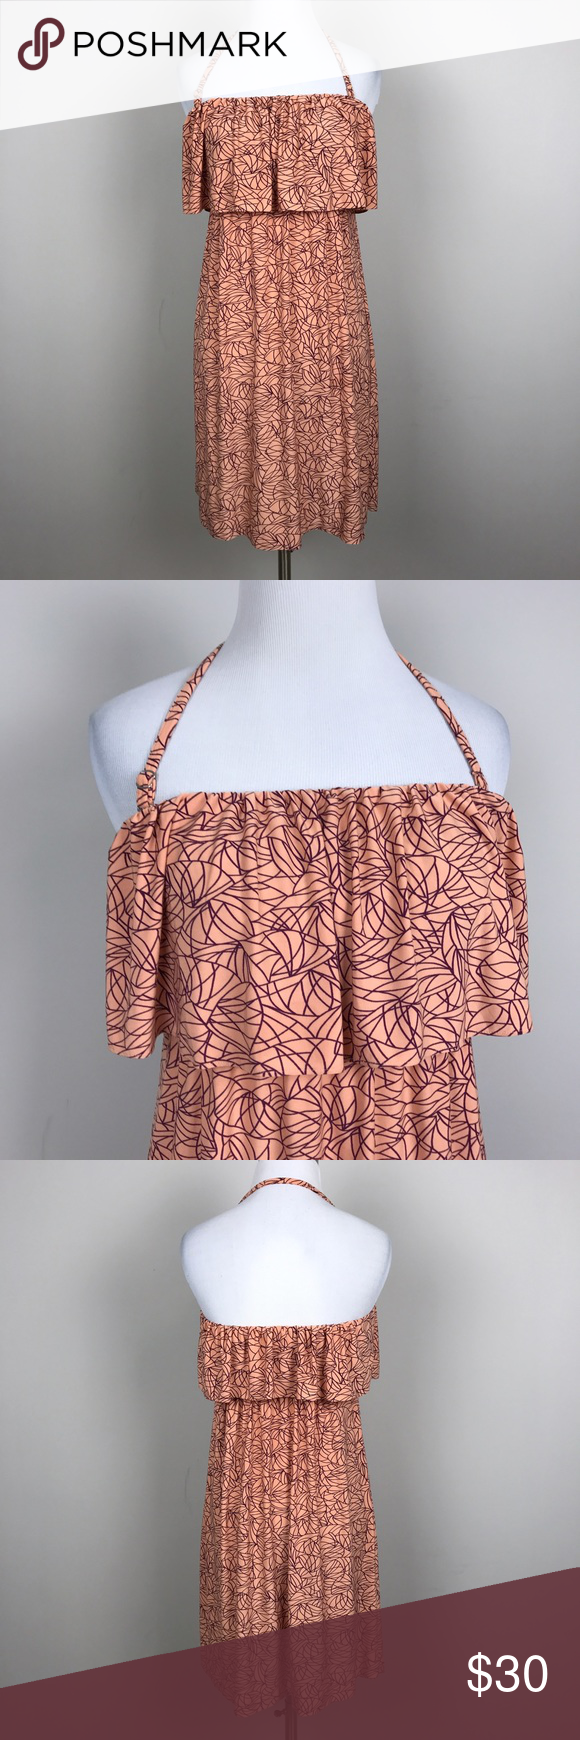 """[Soma] Strapless Halter Tiered Dress Coral Purple Super soft strapless dress. Pullover style with elasticized top and waist. Tiered Ruffle layer. Optional halter strap can be worn as shown. Coral with purple Geometric leaves print.  🔹Pit to Pit: 13""""  🔹Length: 28"""" (from top of bust to hem. 🔹Condition: Excellent pre-owned condition.   *AD21 Soma Dresses Strapless"""